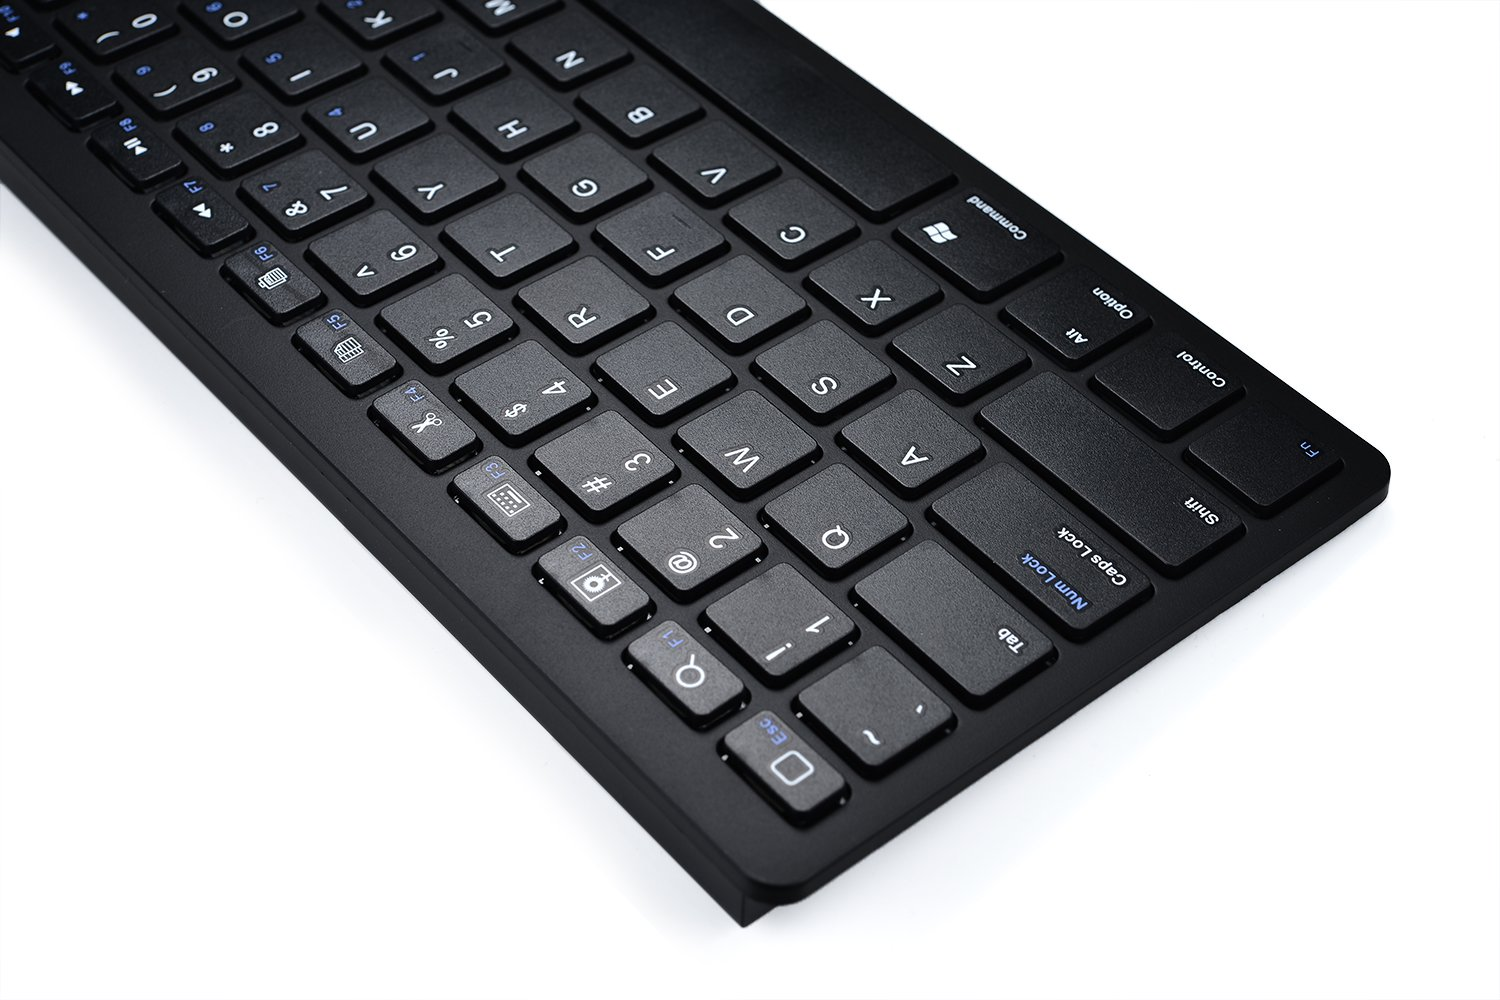 Universal 6-12'' Tablet Wireless Keyboard, COOPER B1 Wireless Bluetooth QWERTY Keyboard Tablet Smartphone Compact Portable Ultra Light Slim for iOS, Android, Windows & Mac (Black) by Cooper Cases (Image #3)